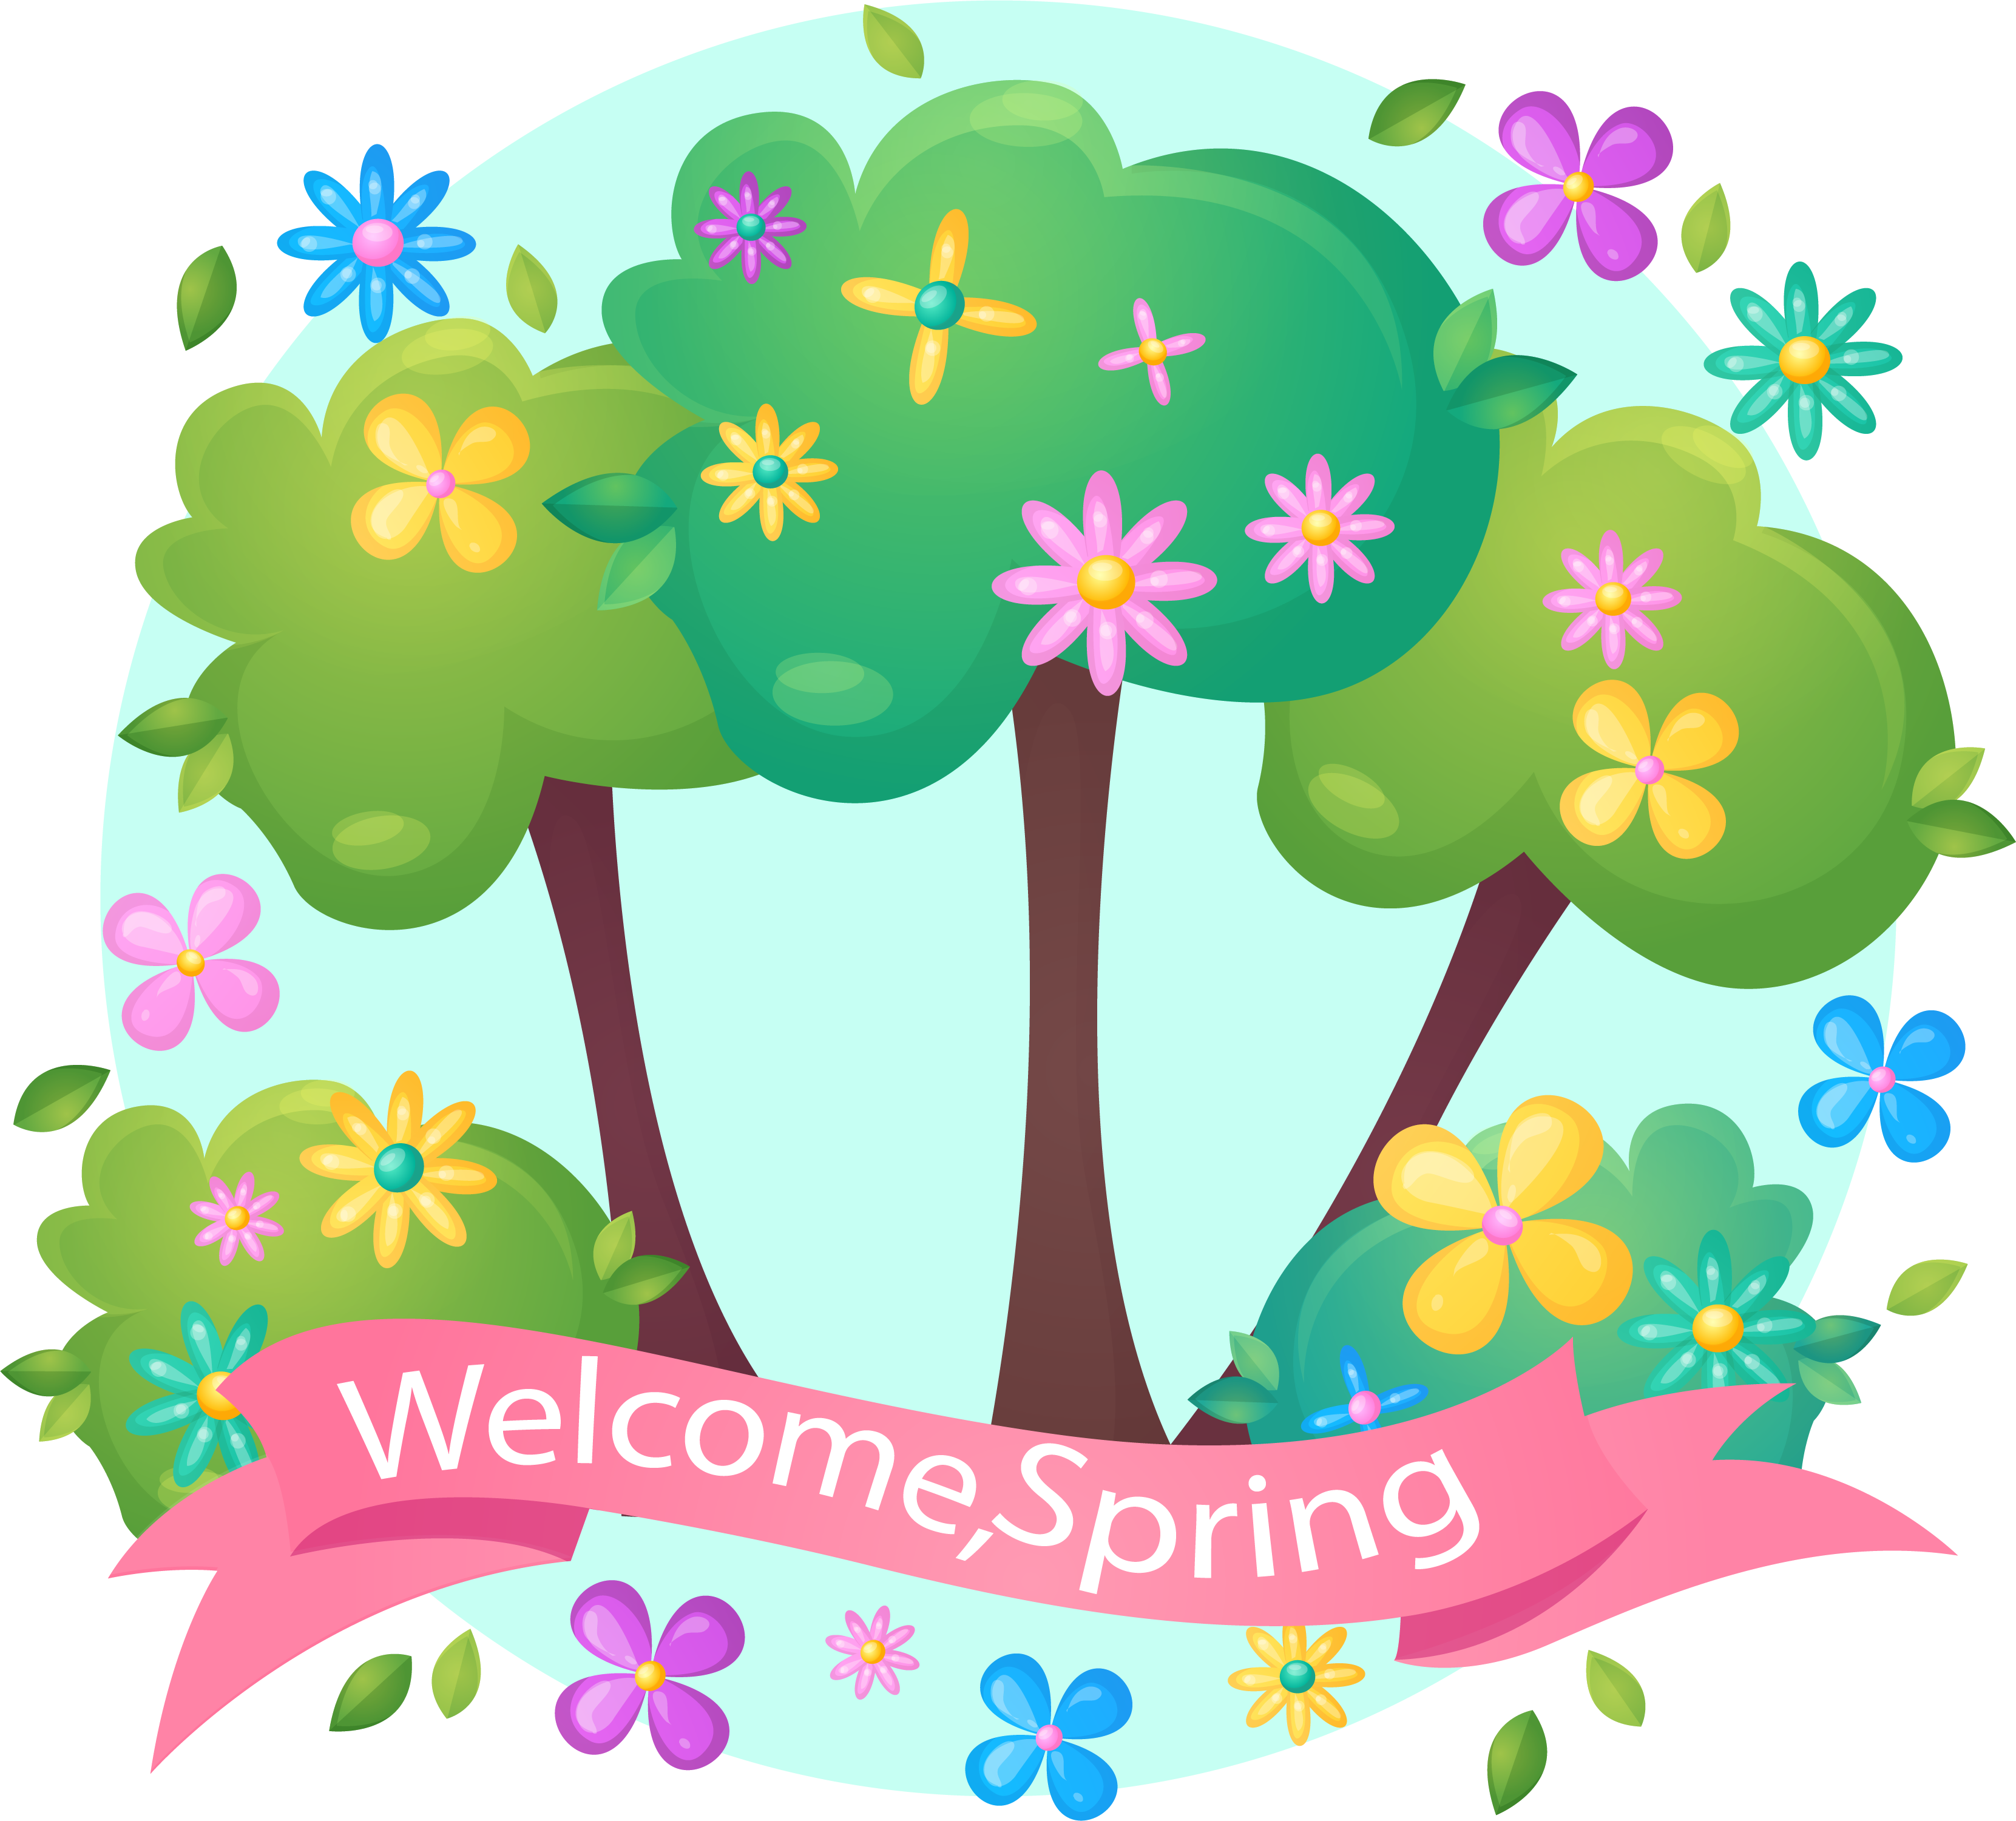 Welcome spring image clipart graphic royalty free Pink Transprent Png Free Download - Banner Welcome Spring ... graphic royalty free